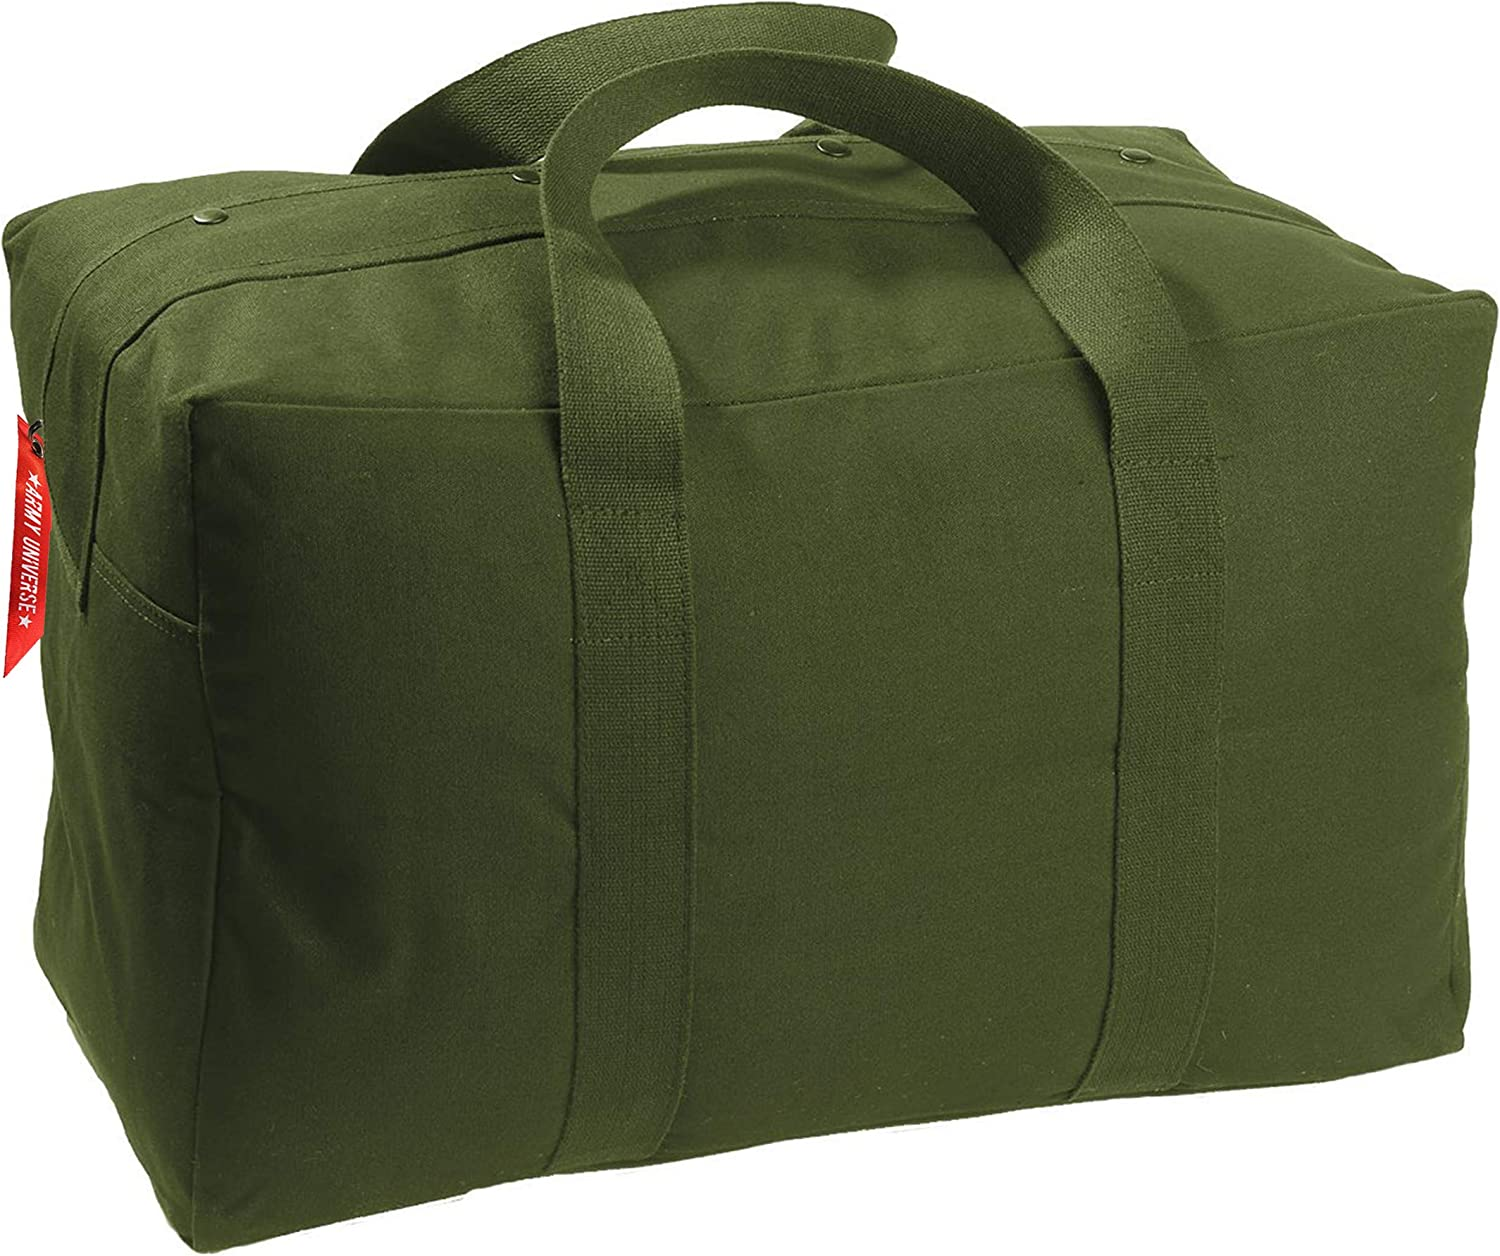 Tactical Parachute Cargo Bag Heavy Duty Canvas Carry Duffle | Simple Bag with One Huge Pocket | Small & Large Sizes Available | Great for Campers, Weekend Getaway, Travel, Gym and More!